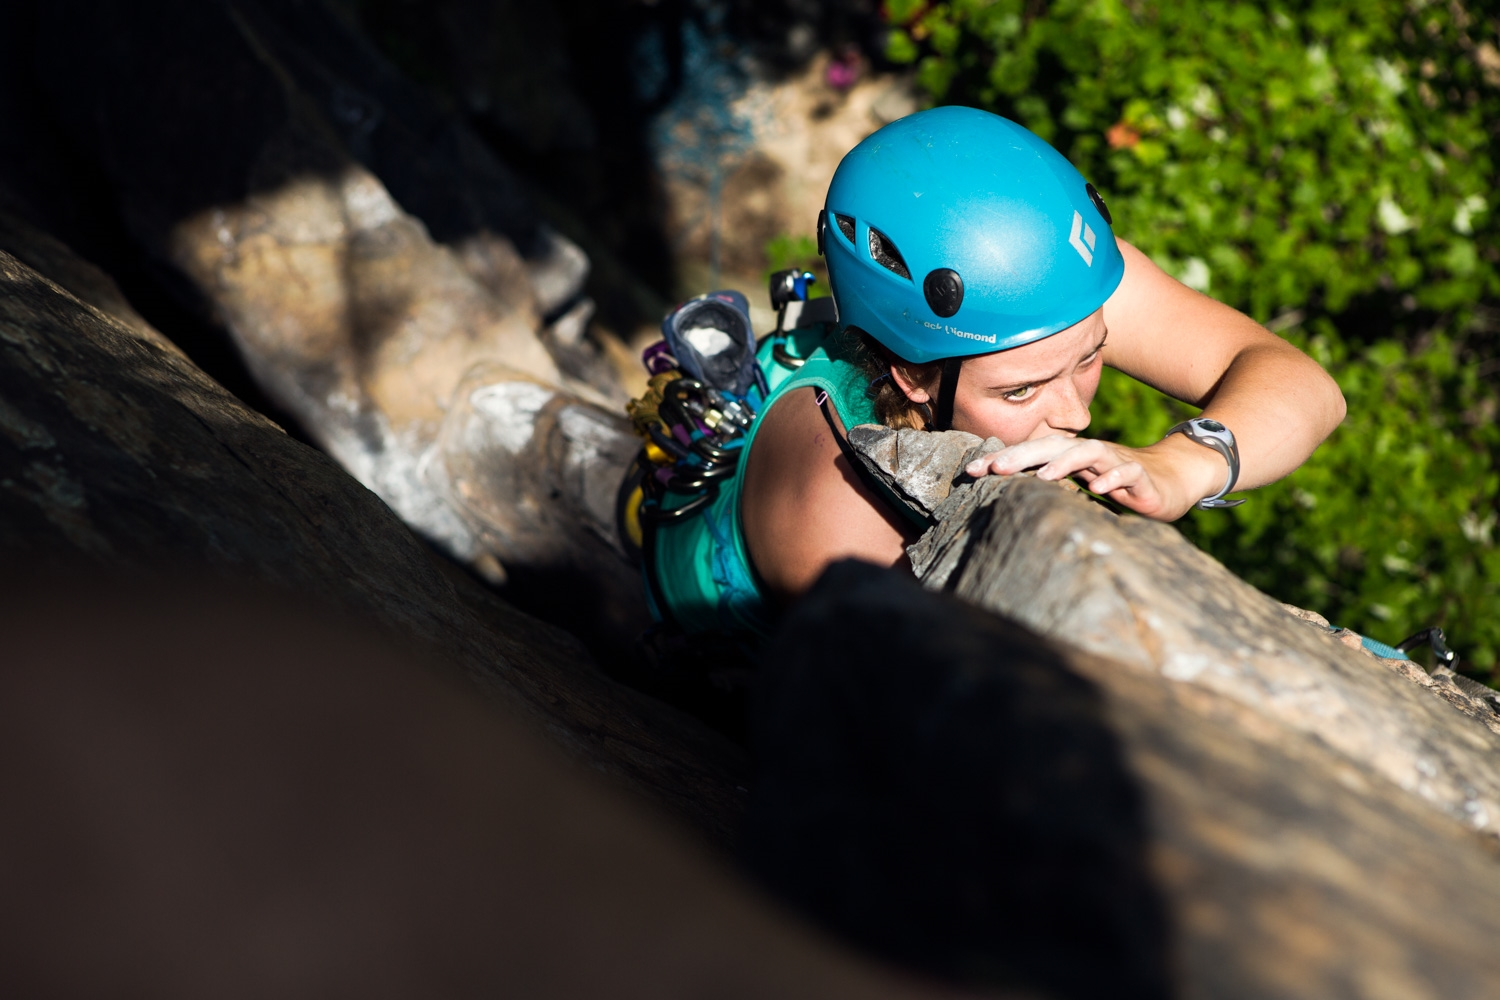 Student, Harper Tice leading Butterfly Flake, 5.7.